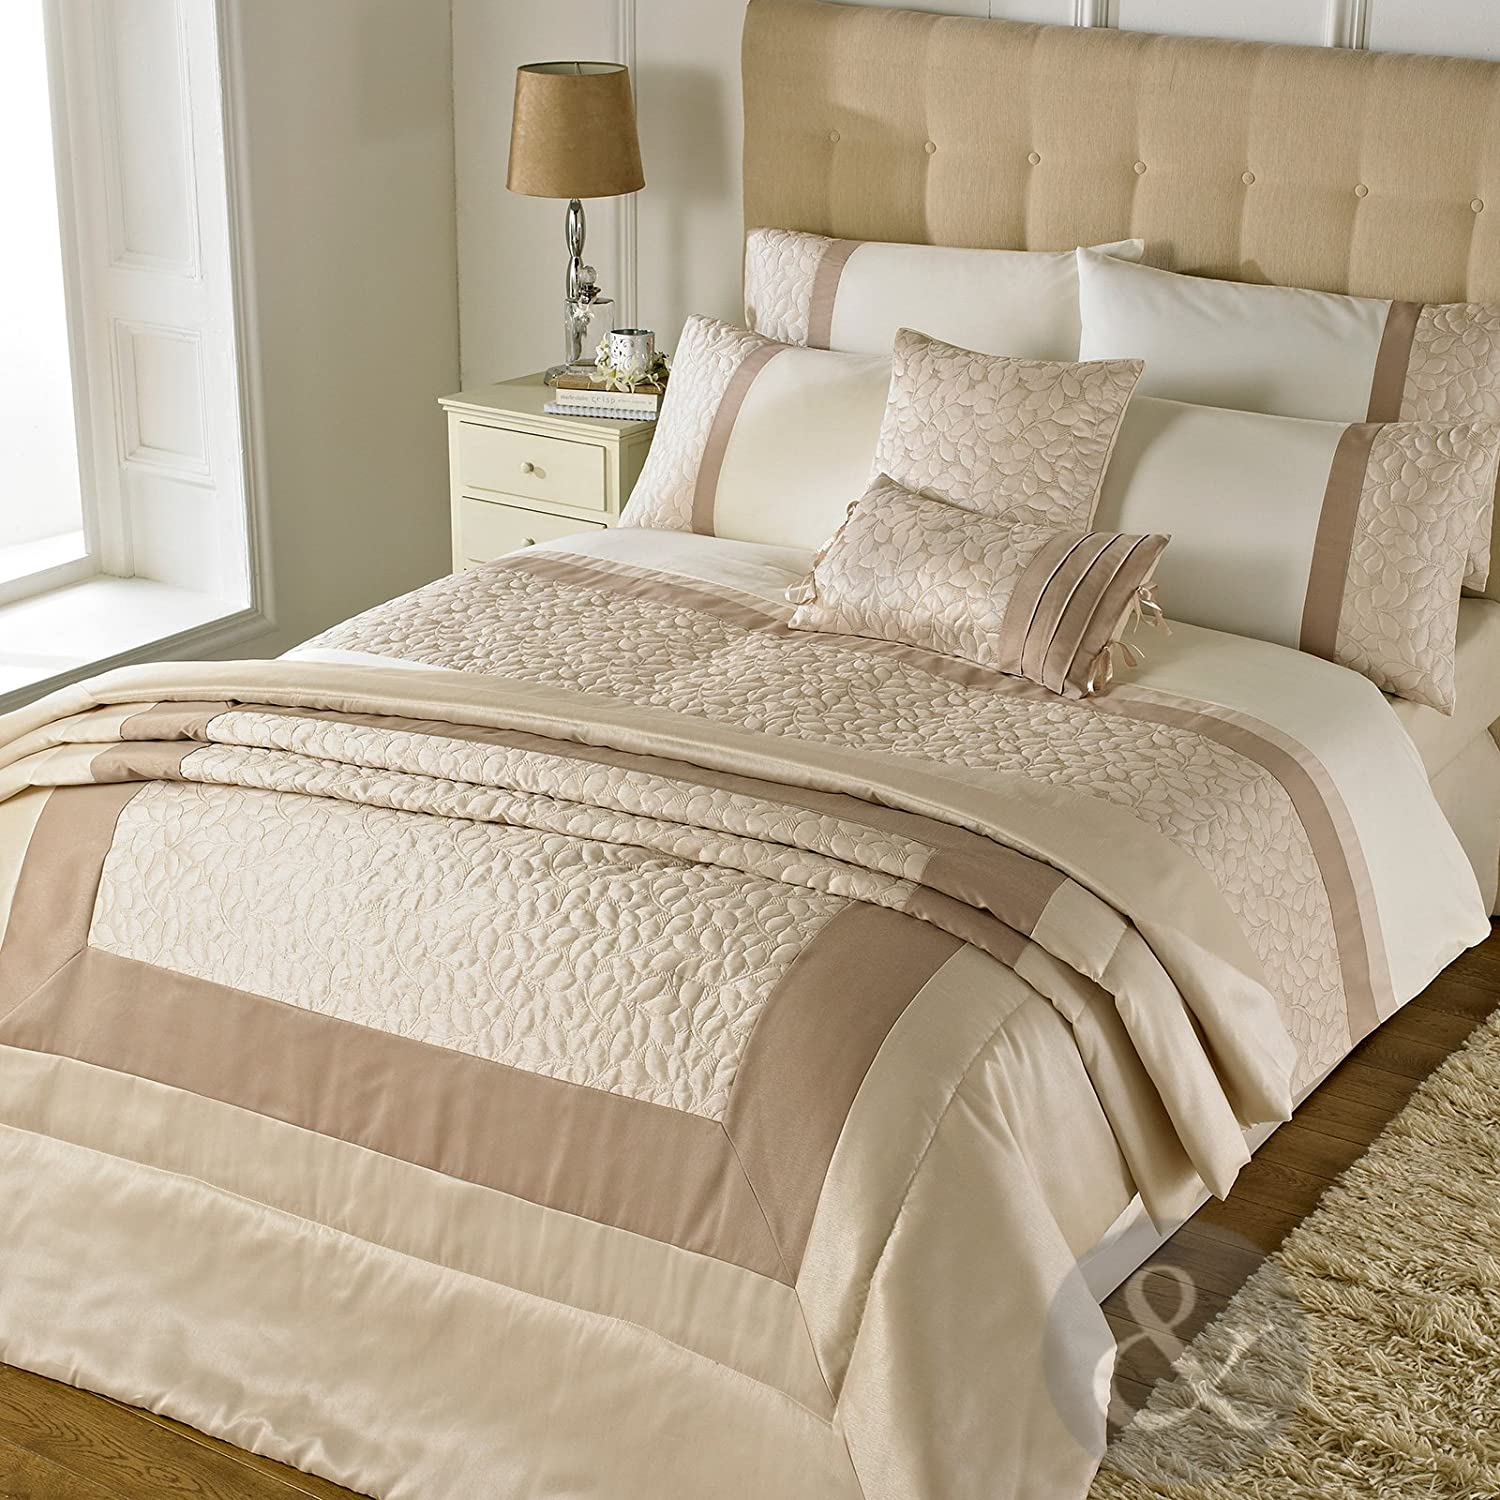 limited mix harry cover derwent corry duvet prd beige expand set cotton